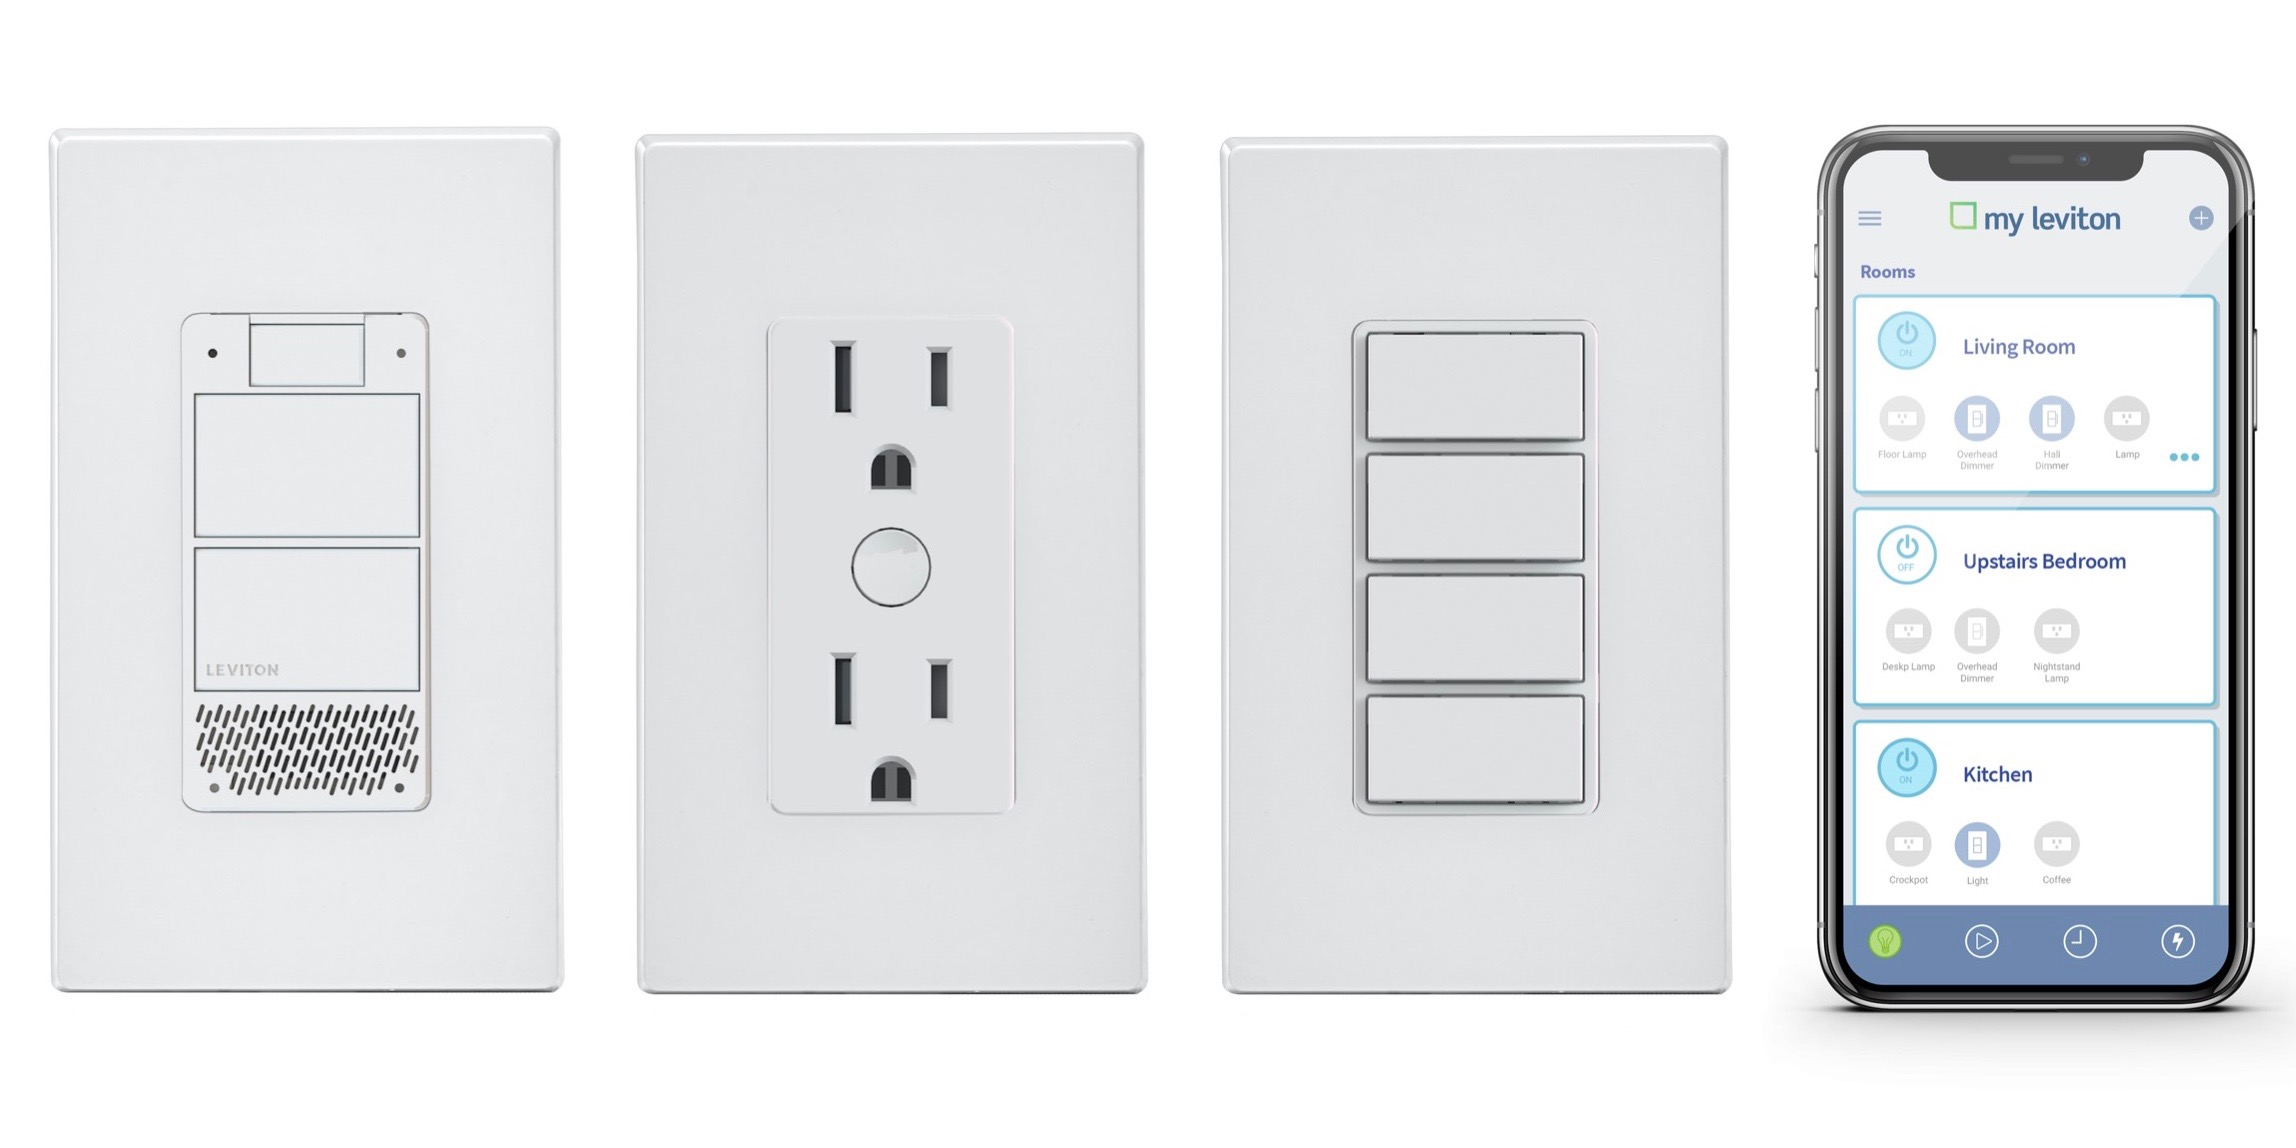 Leviton Wi-fi Switches - Binding Required